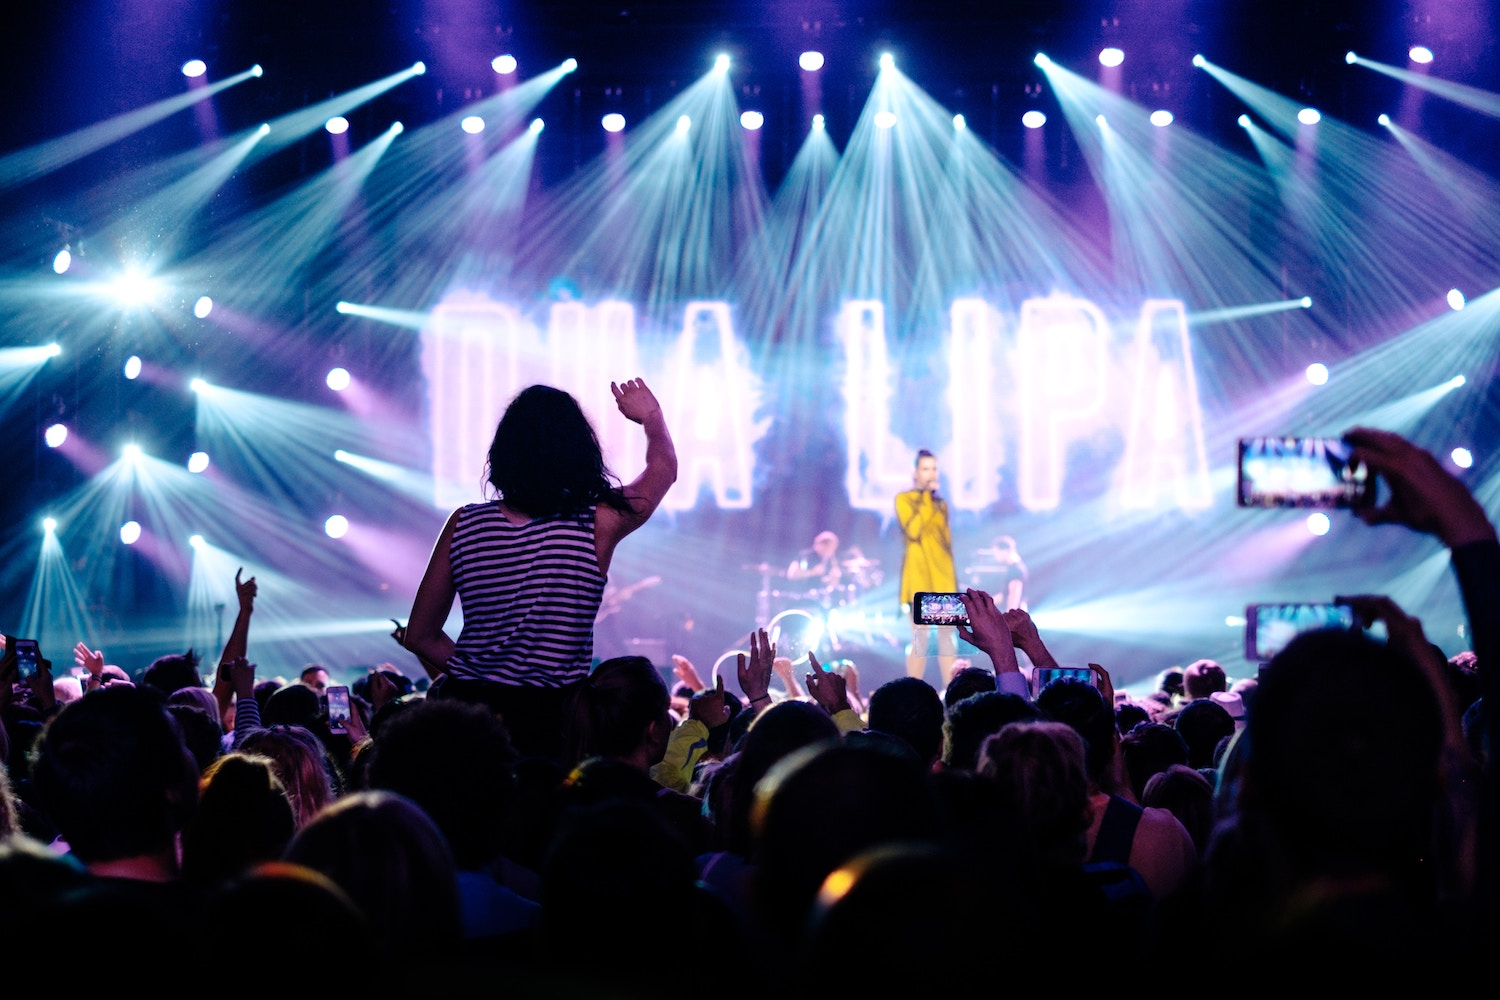 Campaign for gender balance at music festivals to be extended after its success